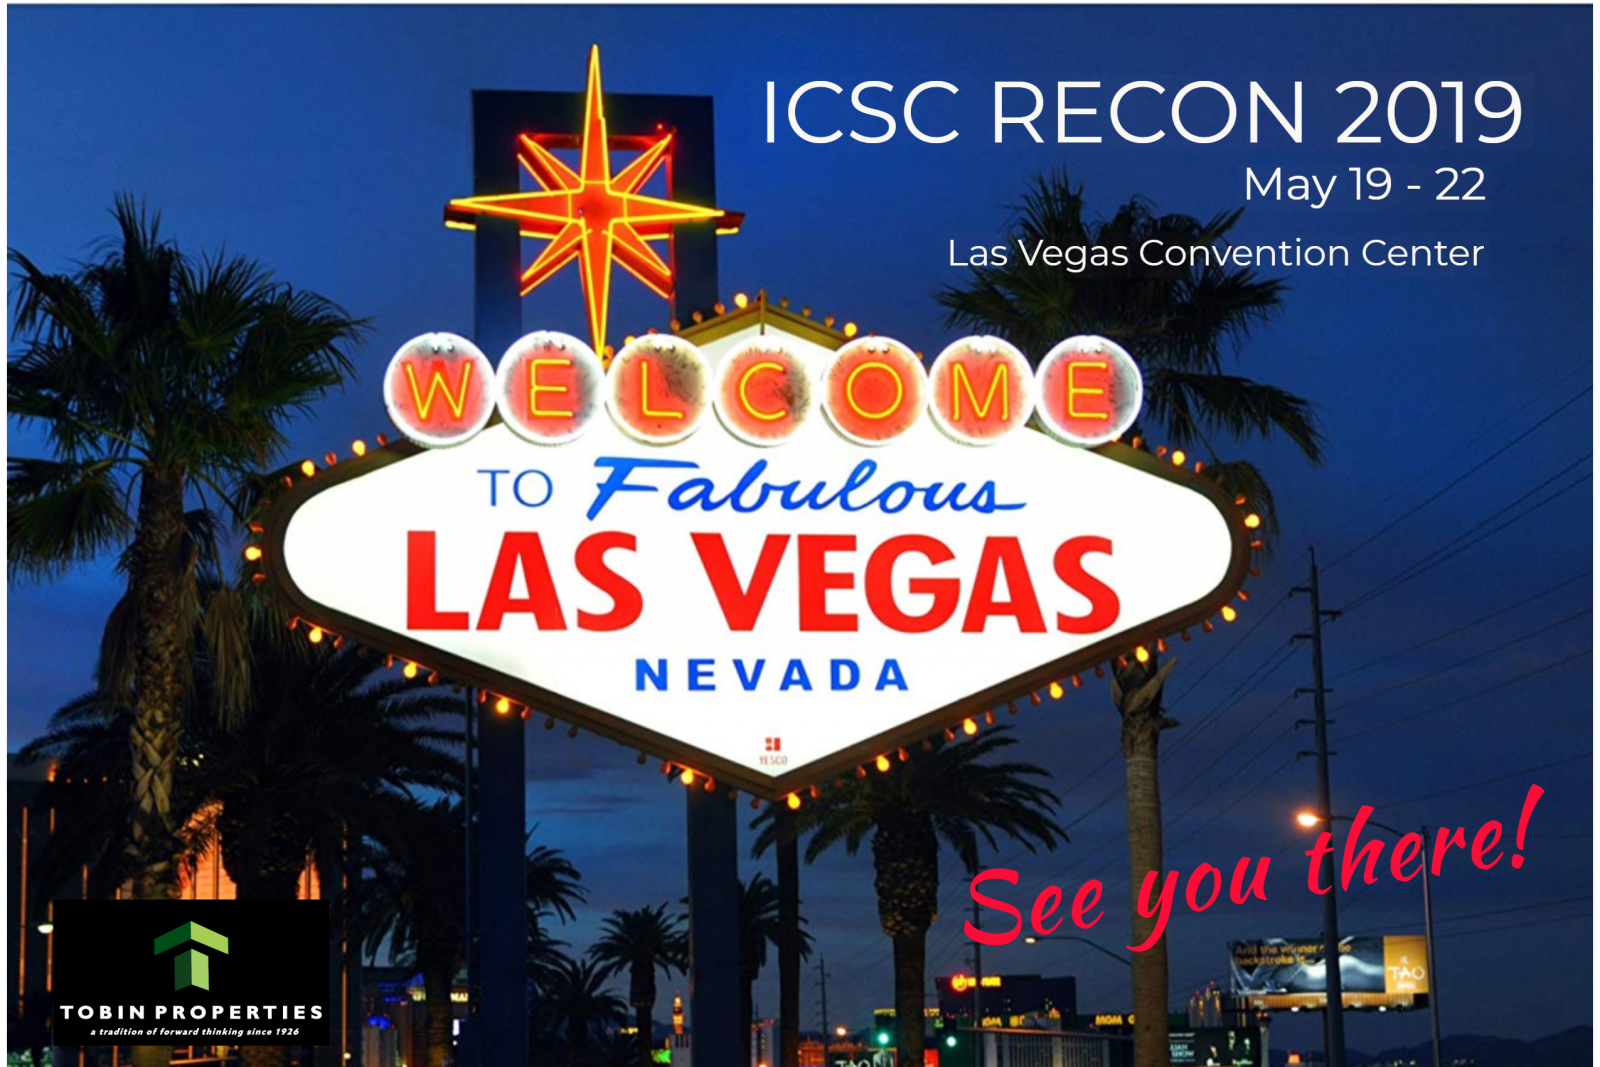 image of ICSC Recon Convention in Las Vegas, NV in May 2019